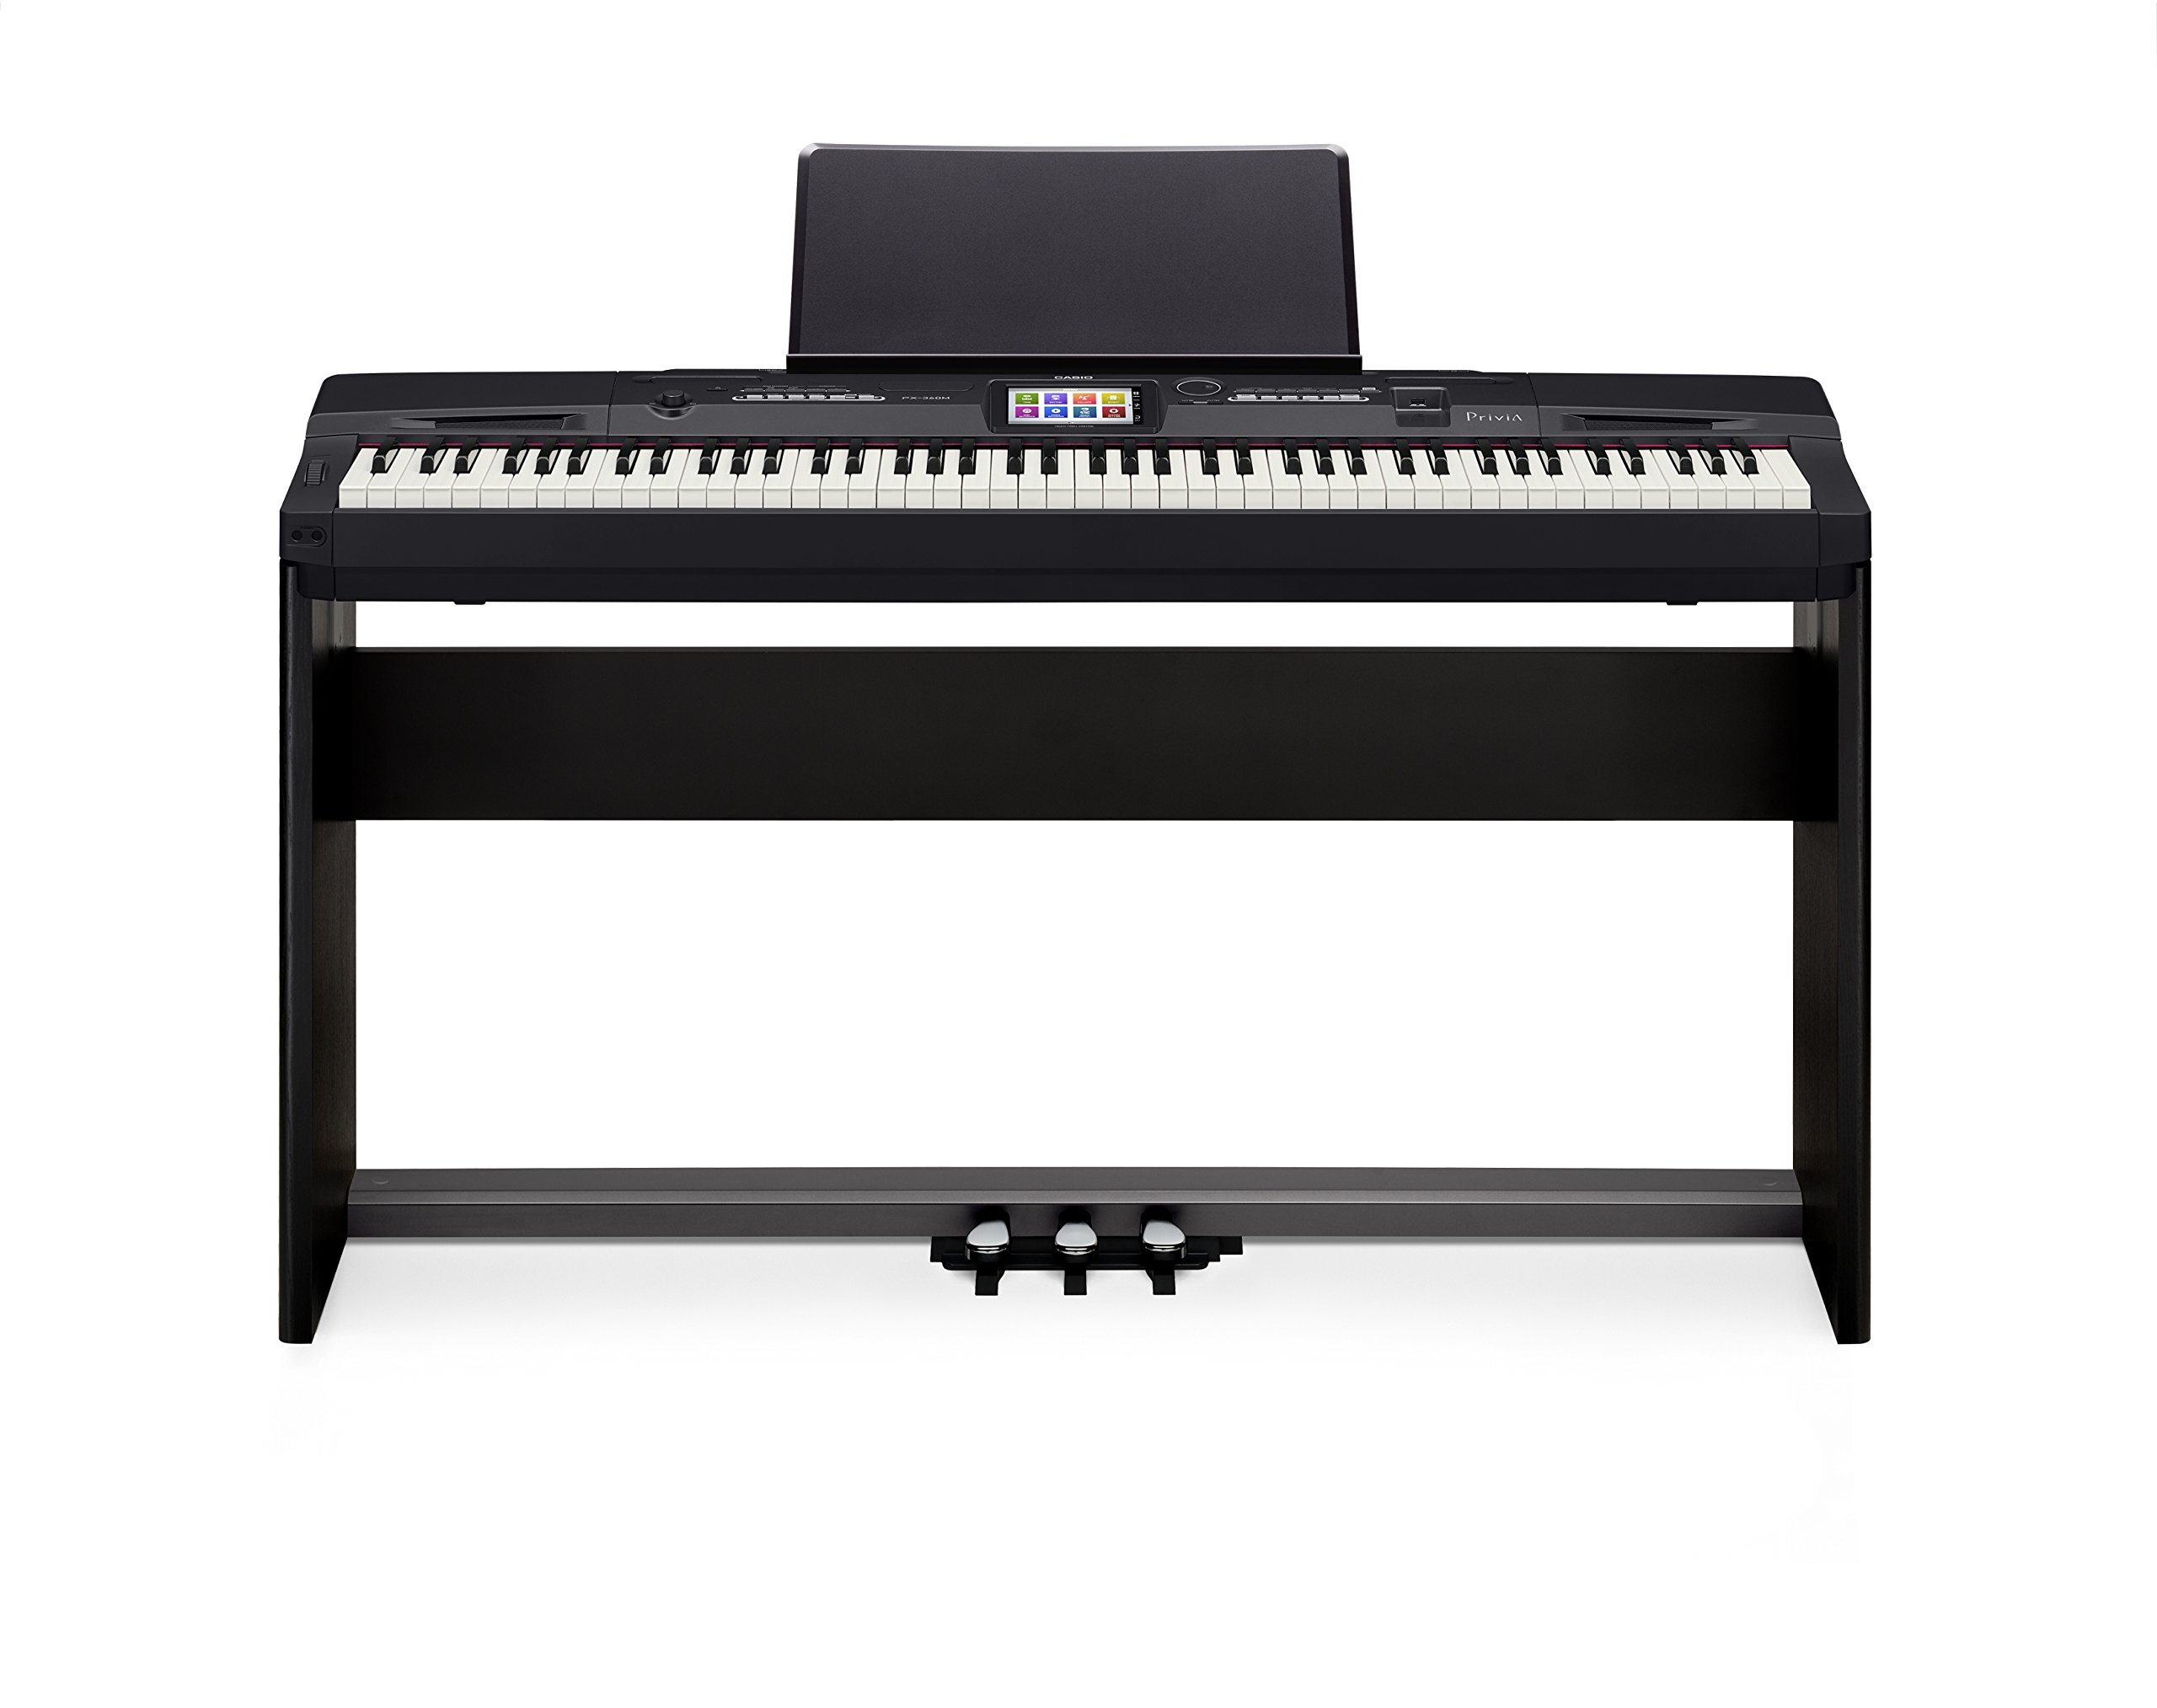 Casio Privia PX-360 Digital Piano - Black Bundle with CS-67 Stand, SP-33 Pedal, Furniture Bench, Instructional Book, Austin Bazaar Instructional DVD, and Polishing Cloth by Casio (Image #8)